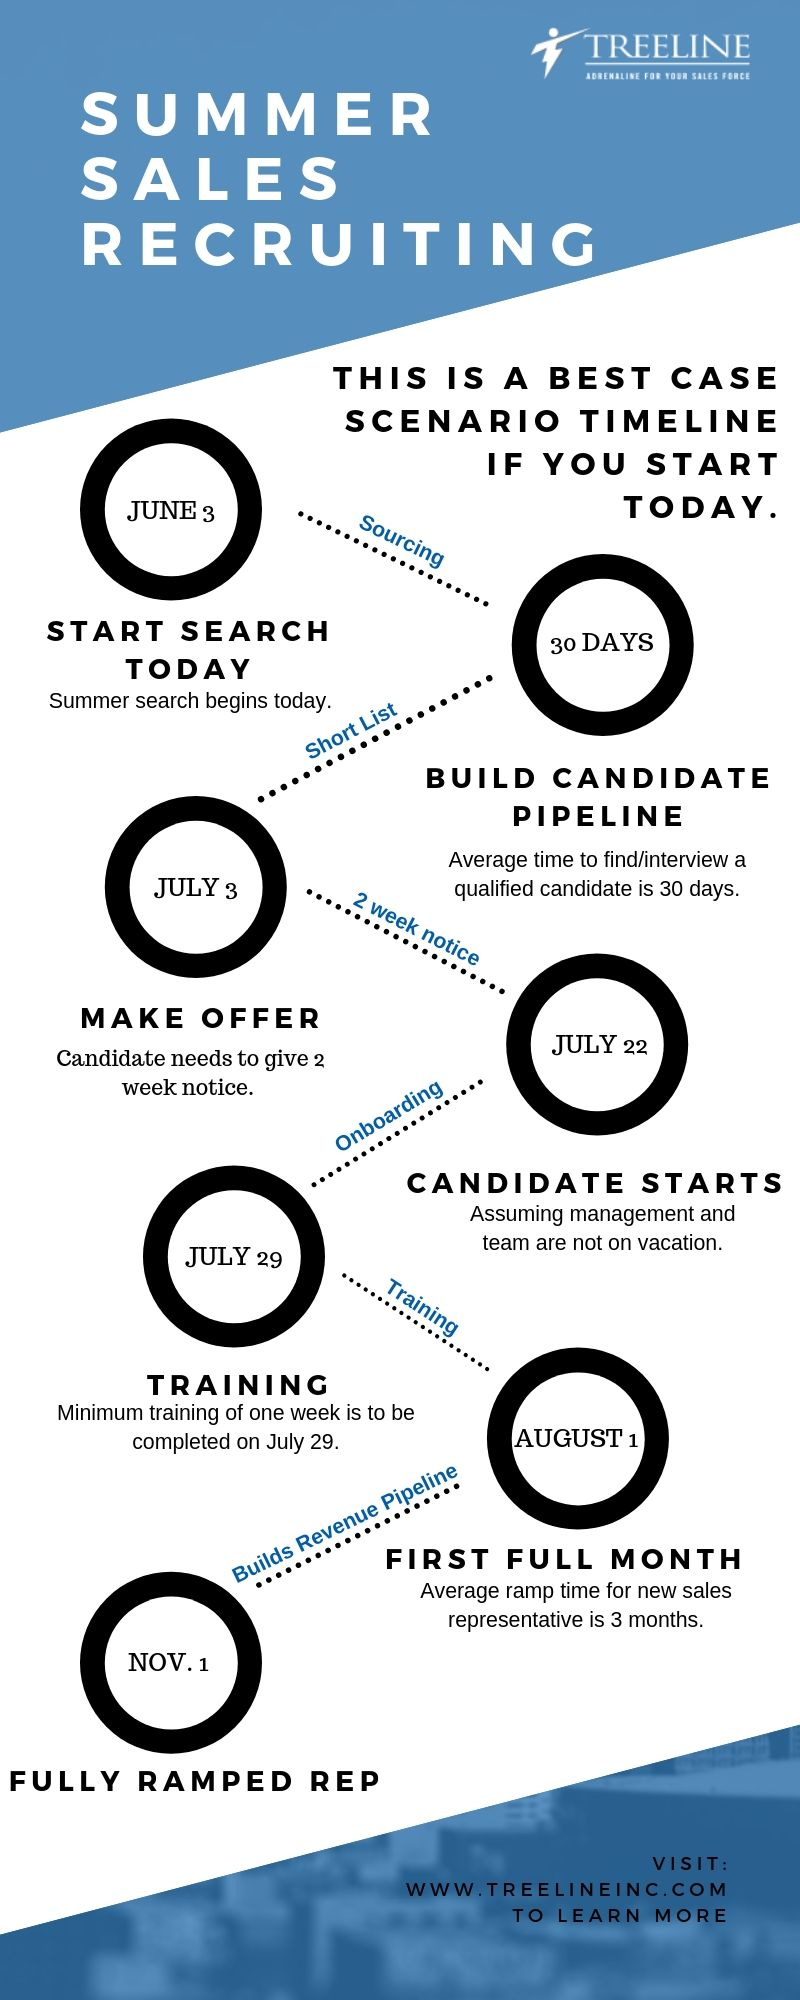 Summer Sales Recruiting Infographic